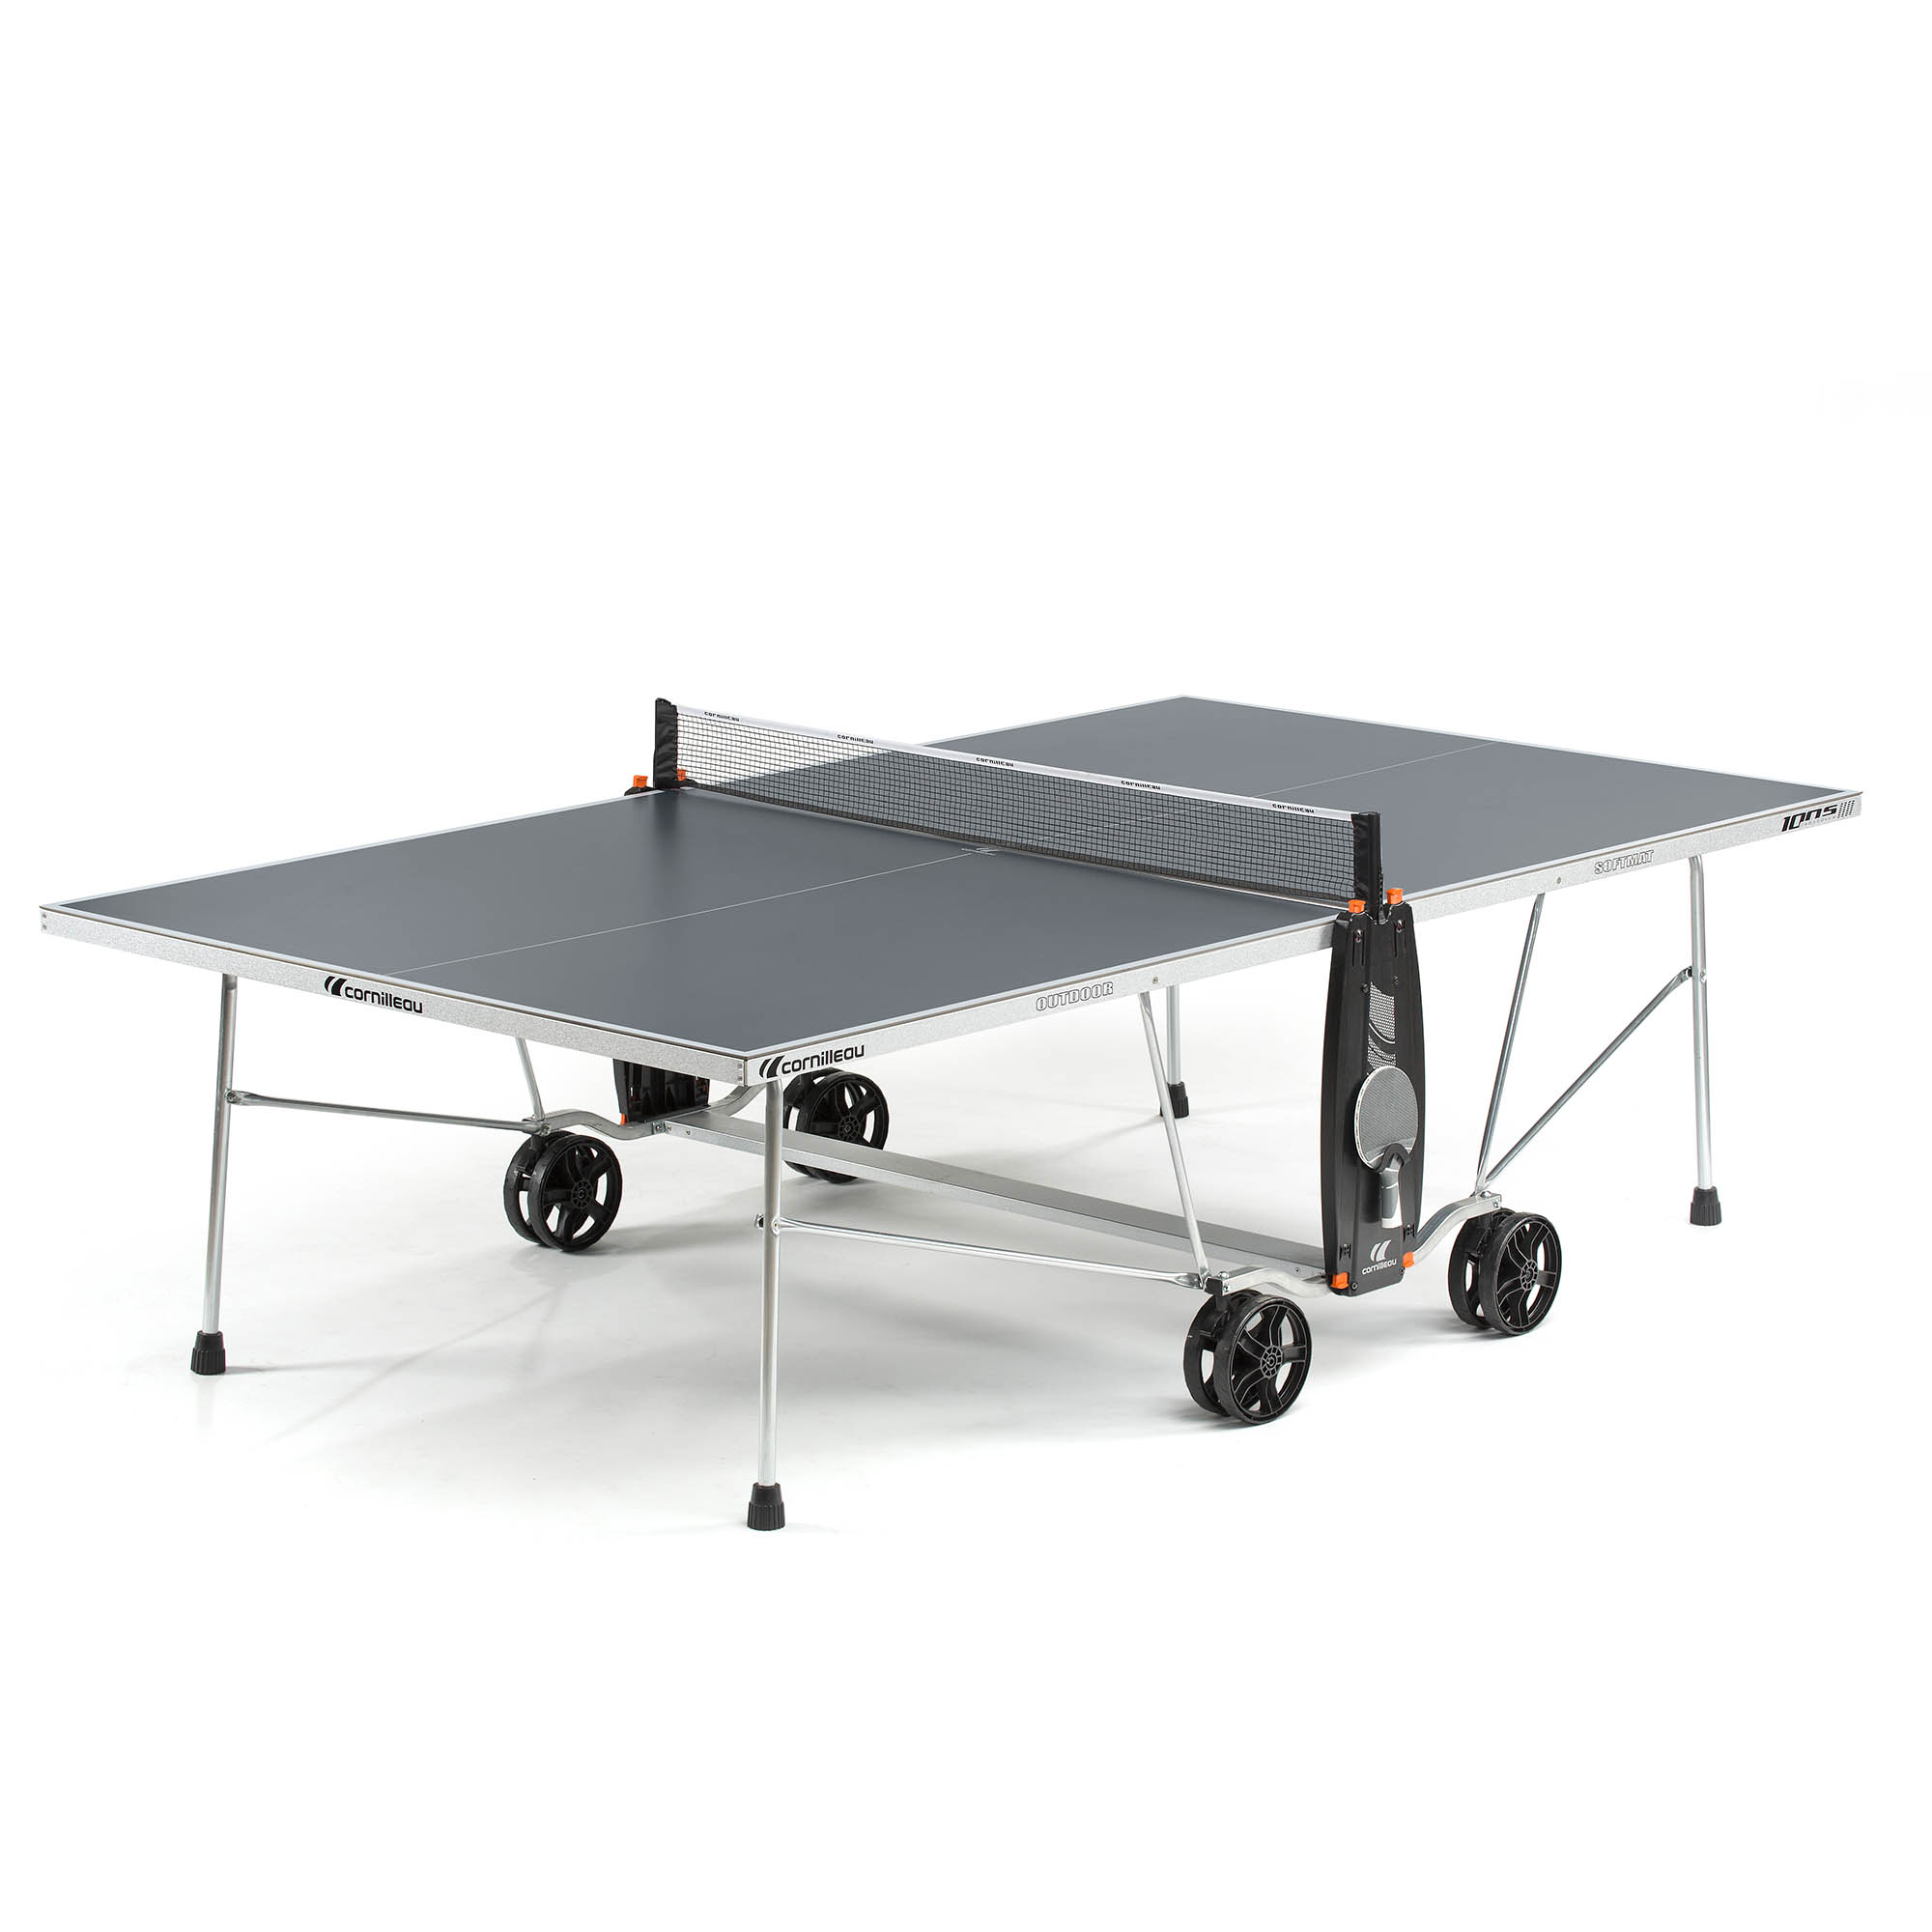 Cornilleau Sport 100S Crossover Outdoor Table Tennis Table  Grey